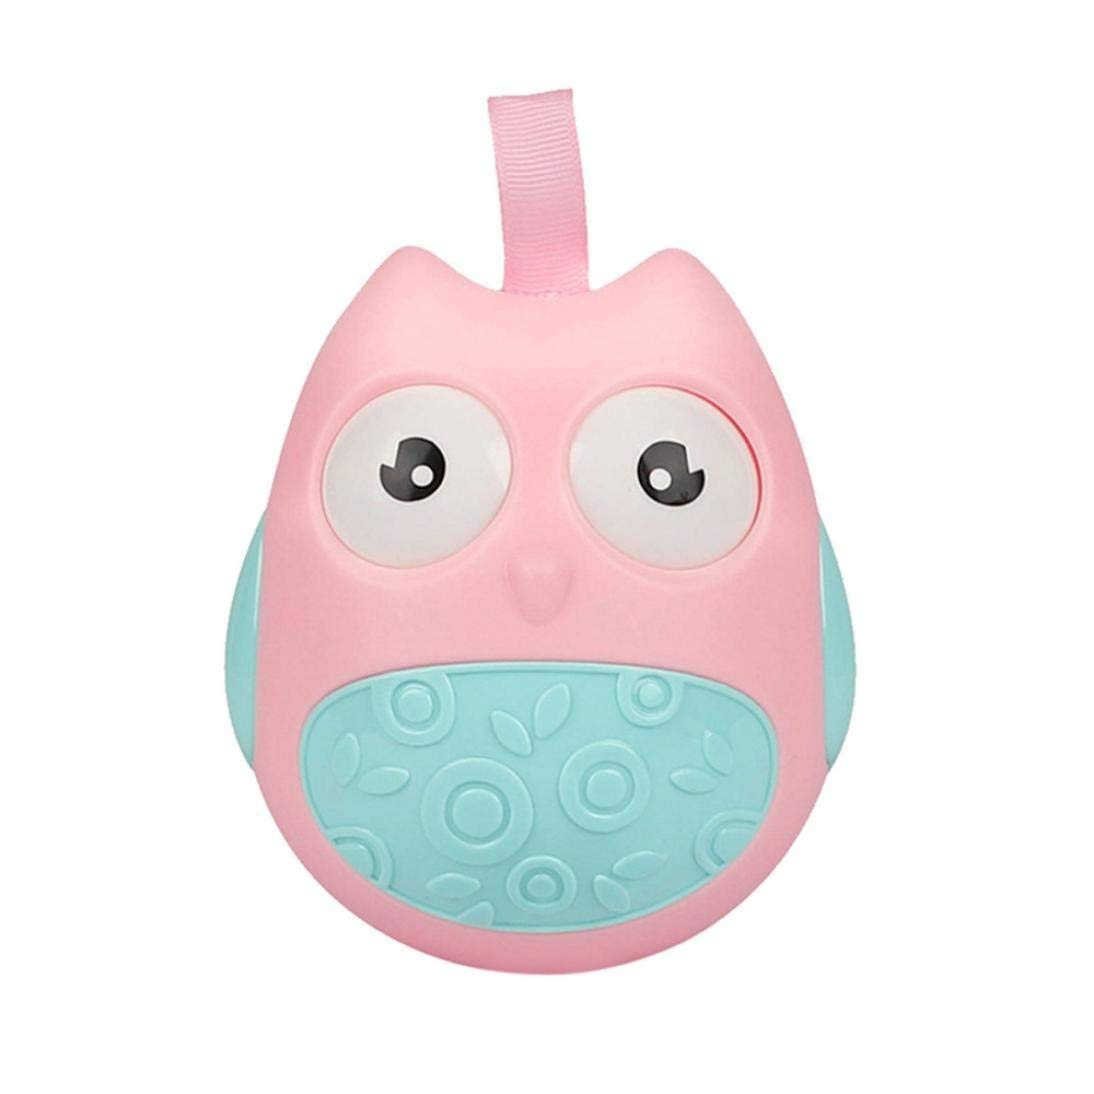 Gbell Cute Owl Tumbler Rattle Toys For Infants, Roly-Poly Toddler Stroller Educational Toys For Baby Girls Boys 0-36 Months,Pink,Green